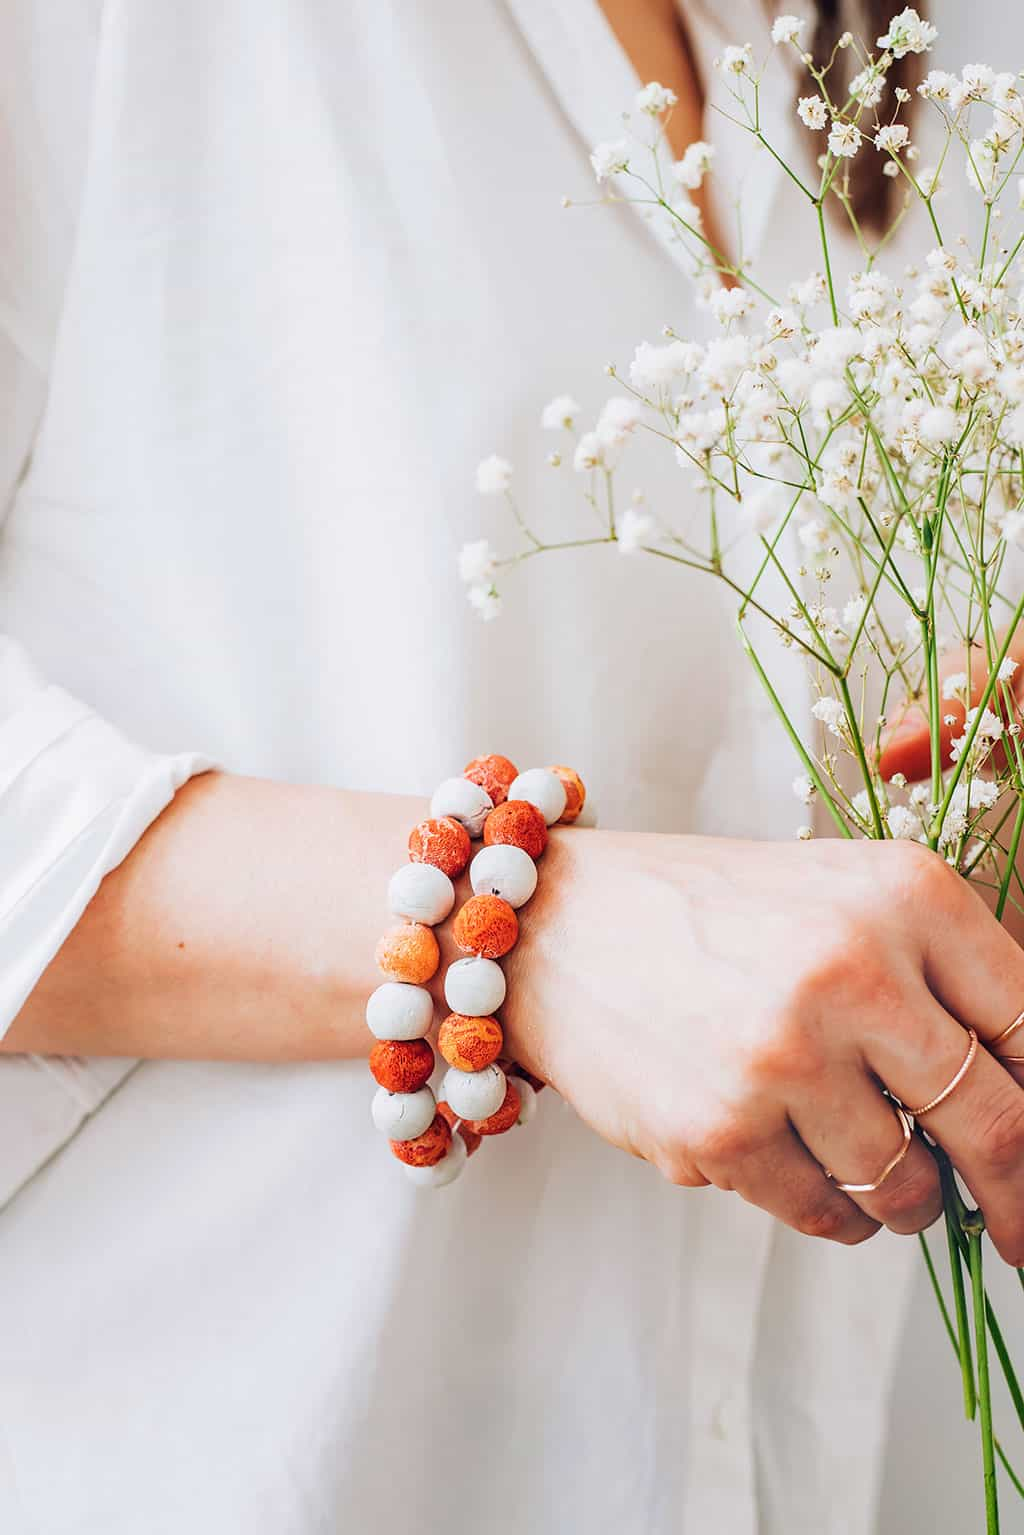 How to make an essential oil diffuser bracelet